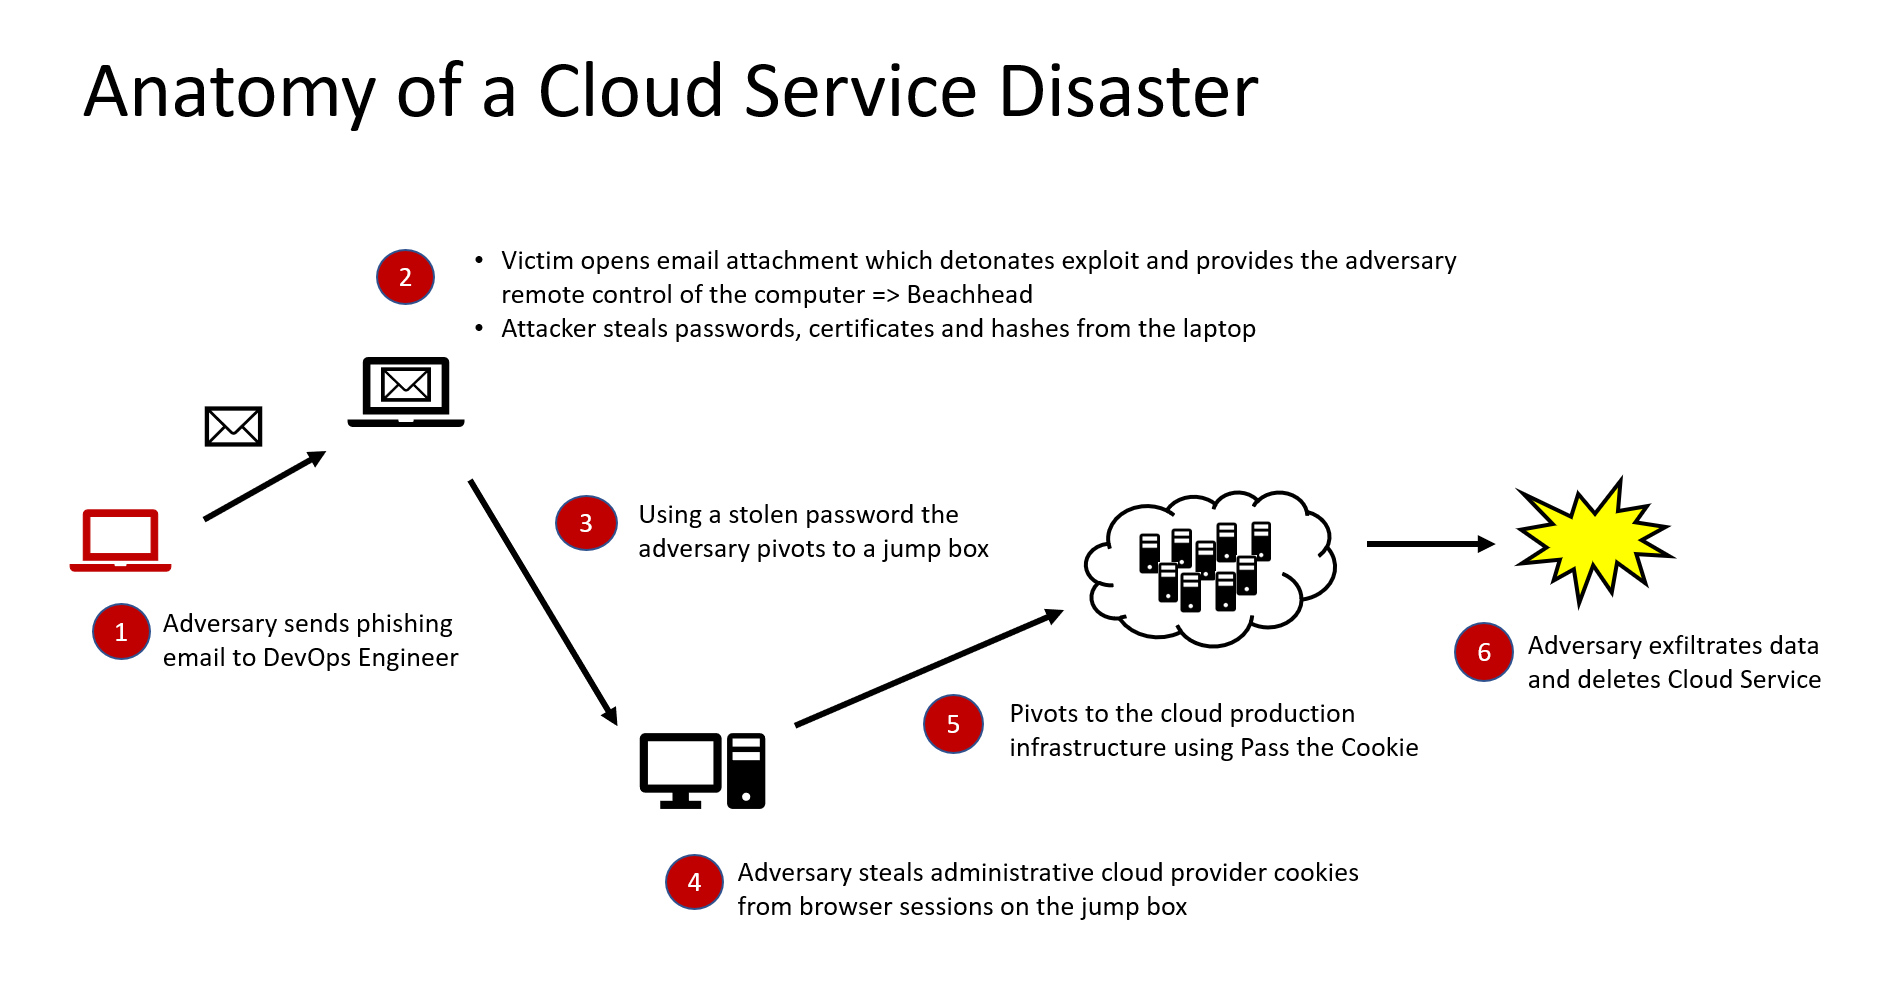 Anatomy of Cloud Service Disaster